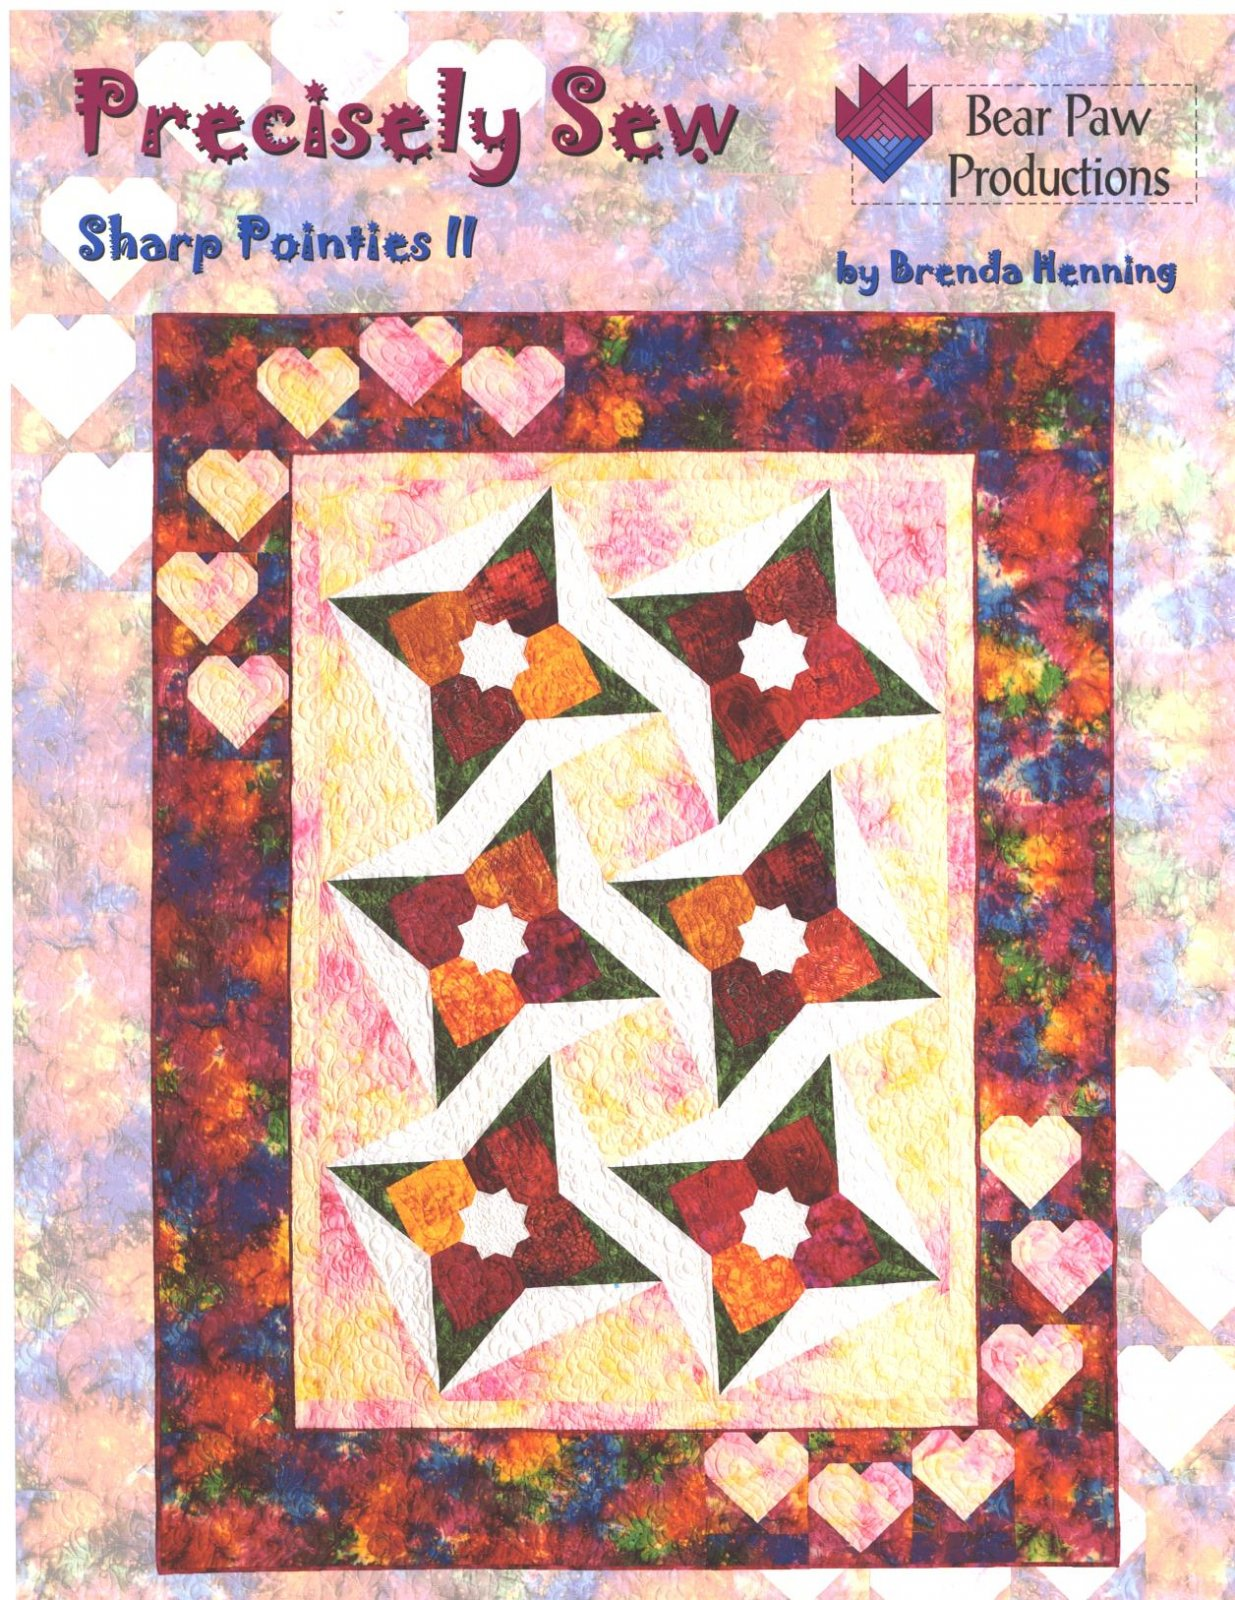 Precisely Sew ~ Sharp Pointies II